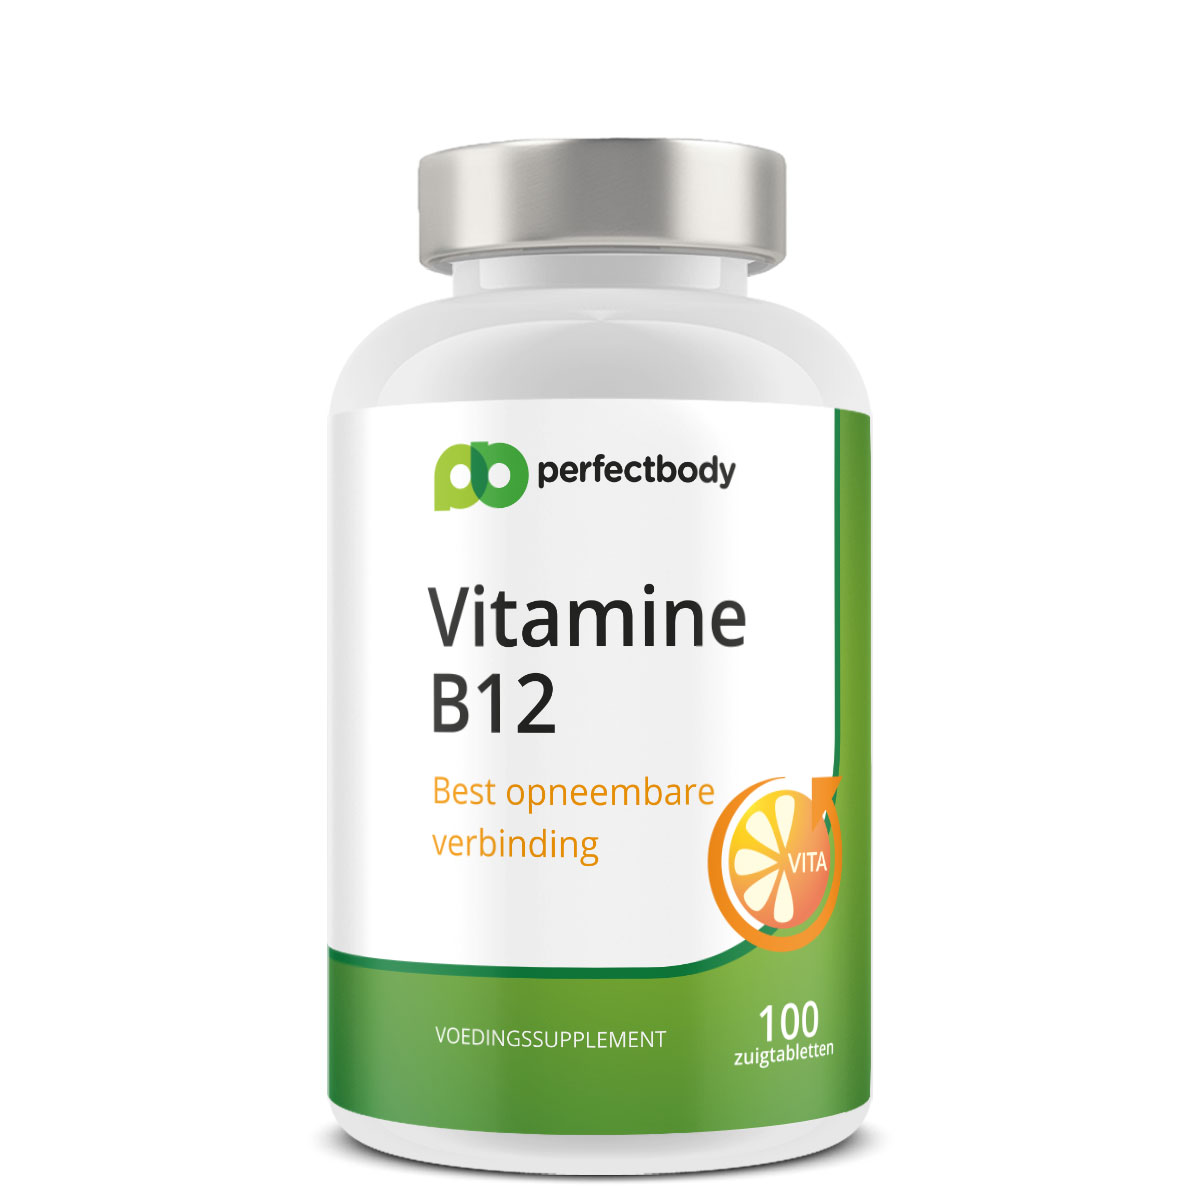 Perfectbody Vitamine B12 Tabletten - 100 Zuigtabletten